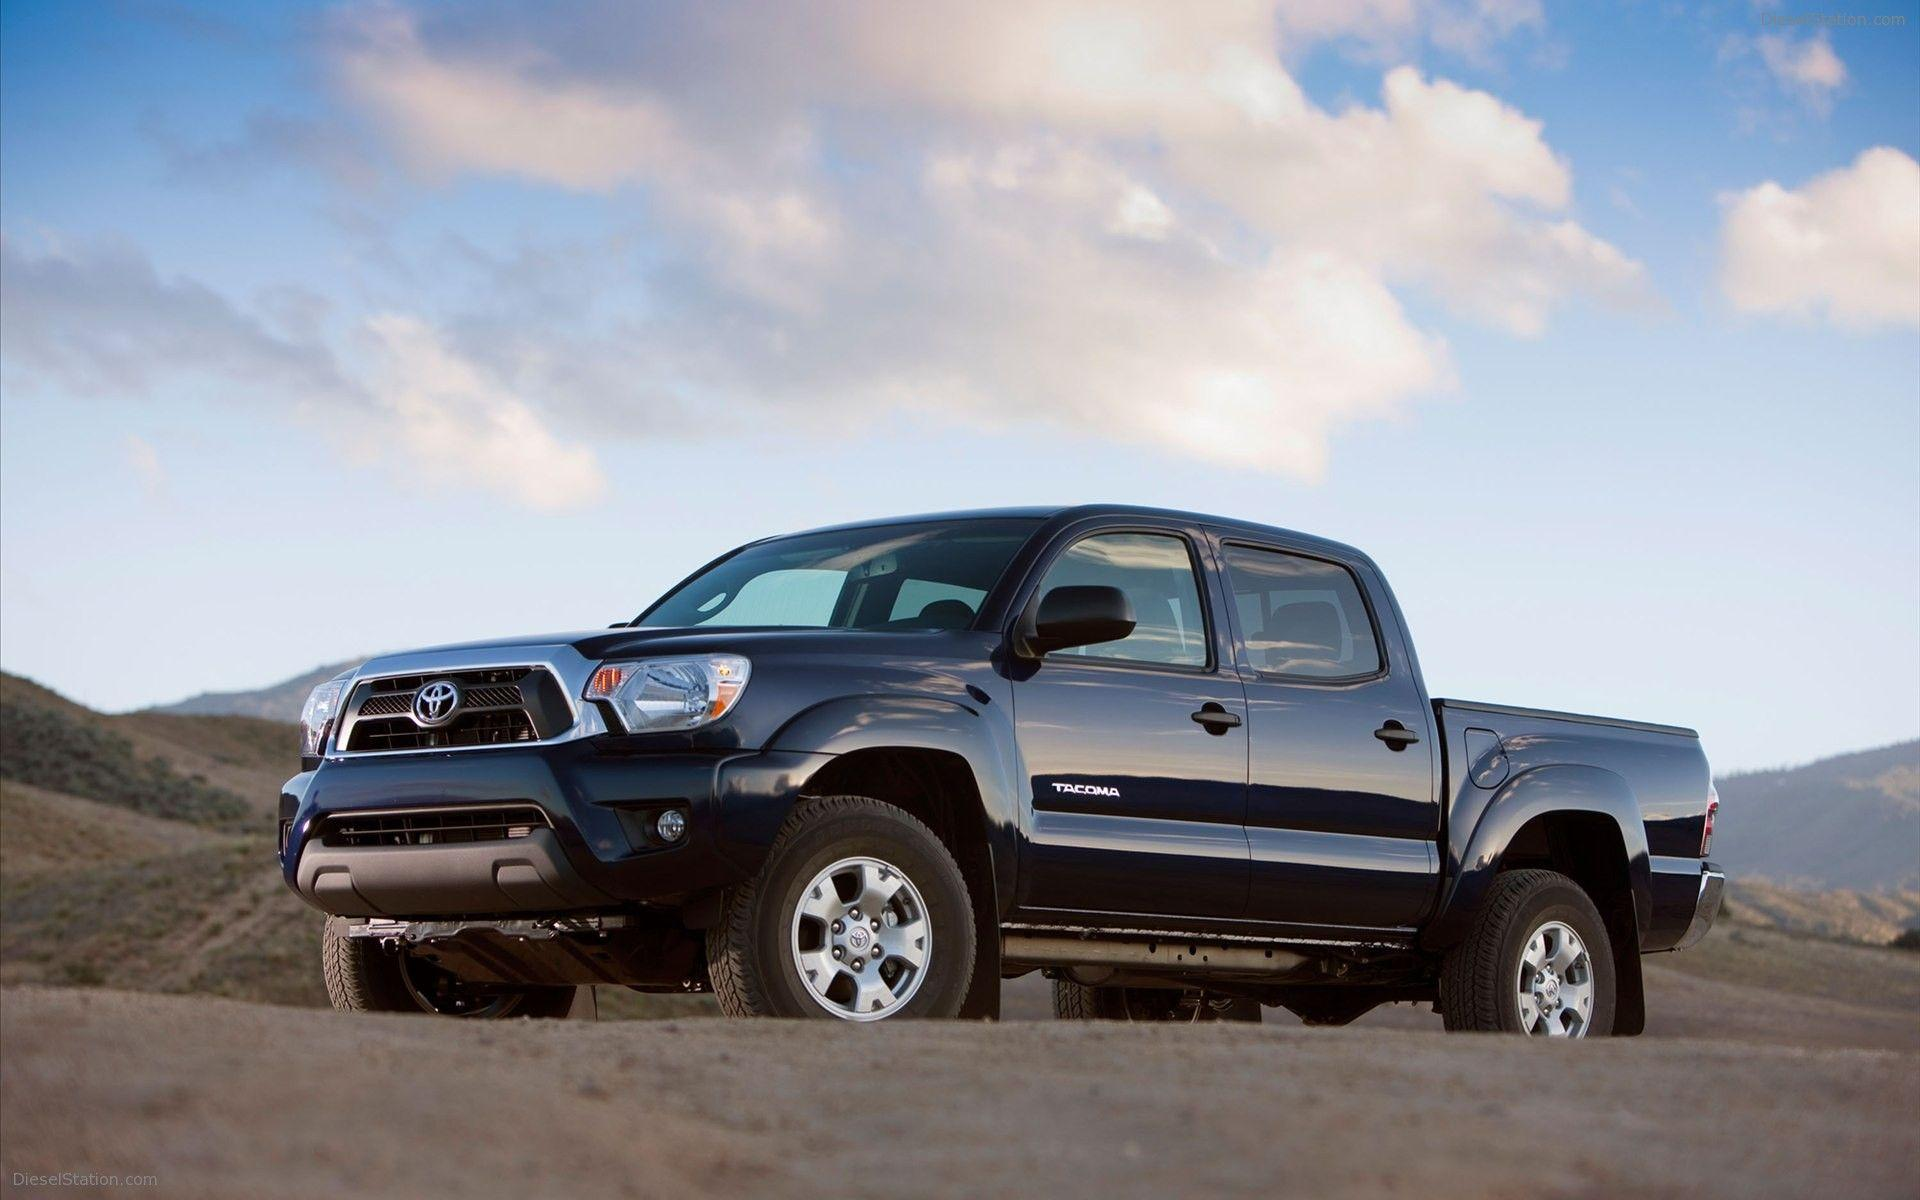 Toyota Tacoma 2012 Widescreen Exotic Car Wallpapers of 45